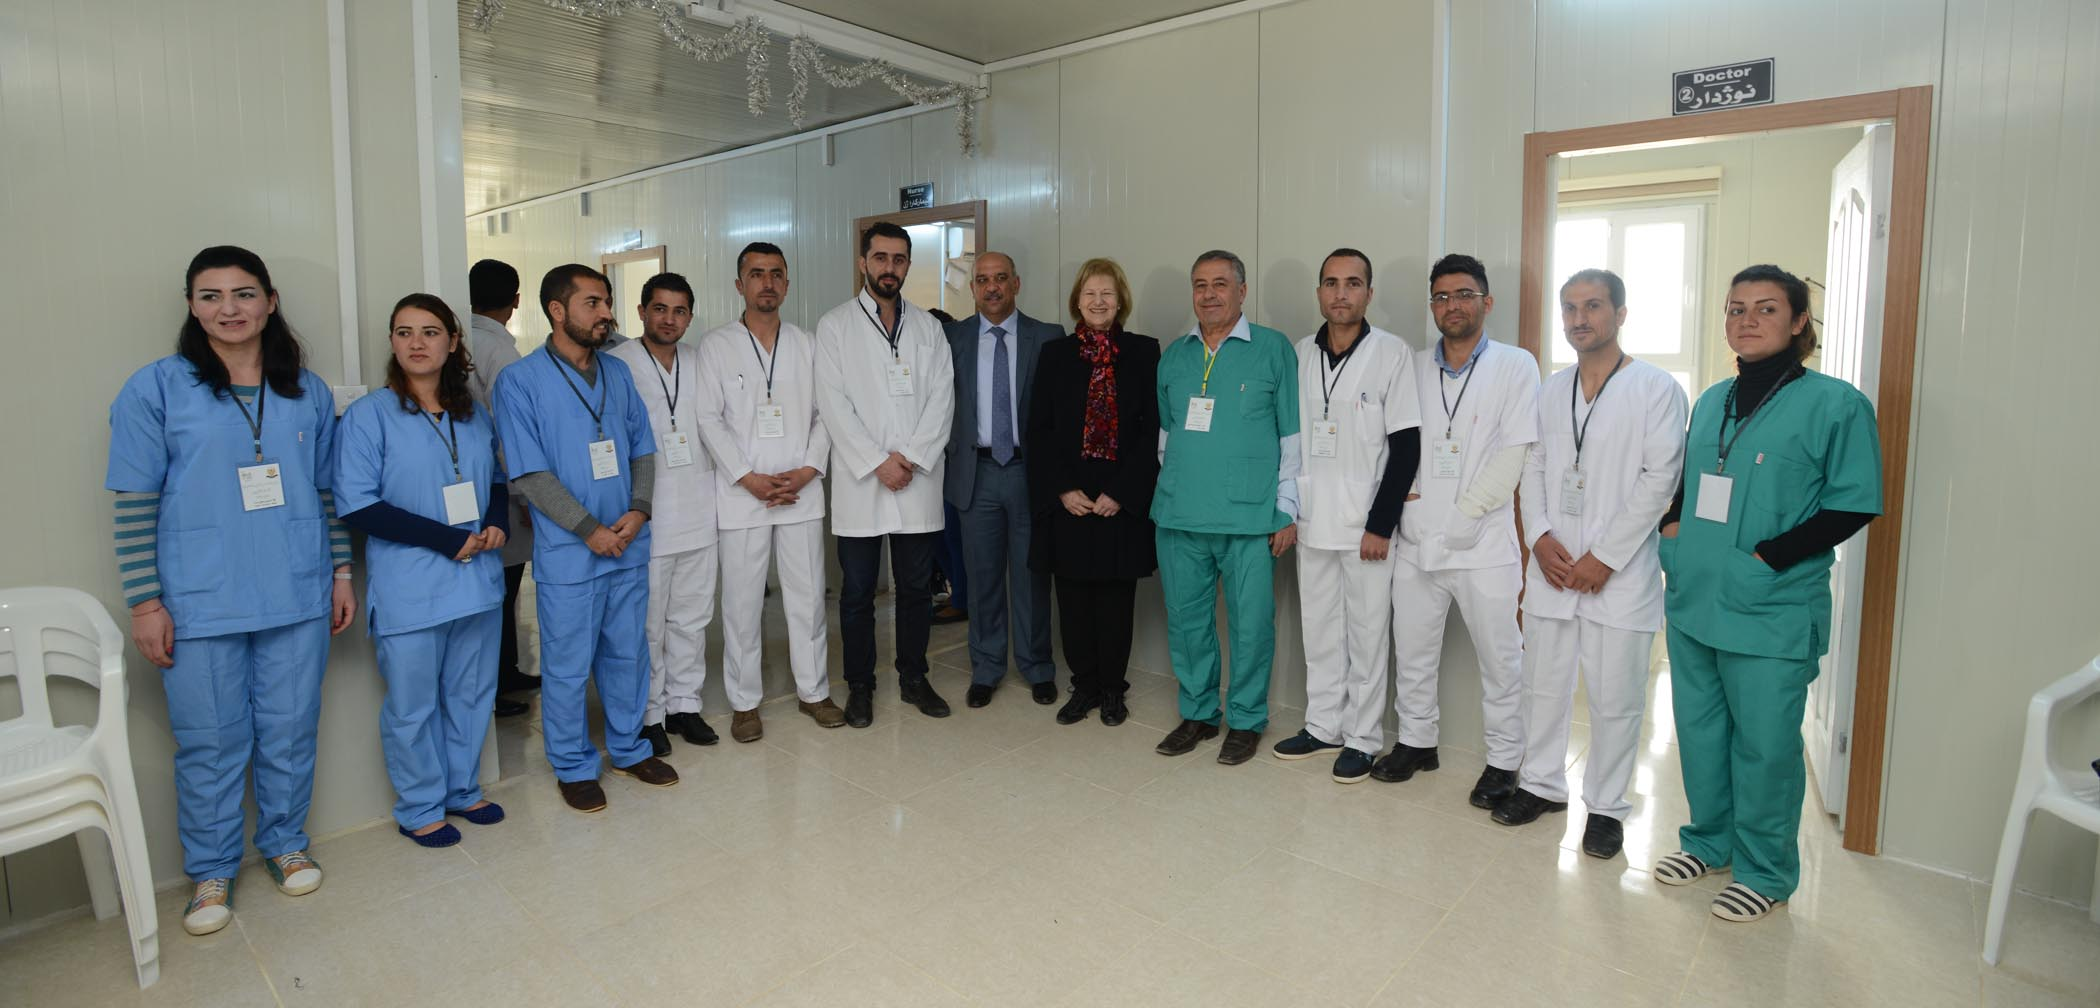 AMAR Chairman, Baroness Nicholson And Regional Director, Dr Ali Muthanna, Stand With The Clinical Team Working At The New Health Centre In Khanke.  The Majority Of Themselves Refugees Living In The Camp